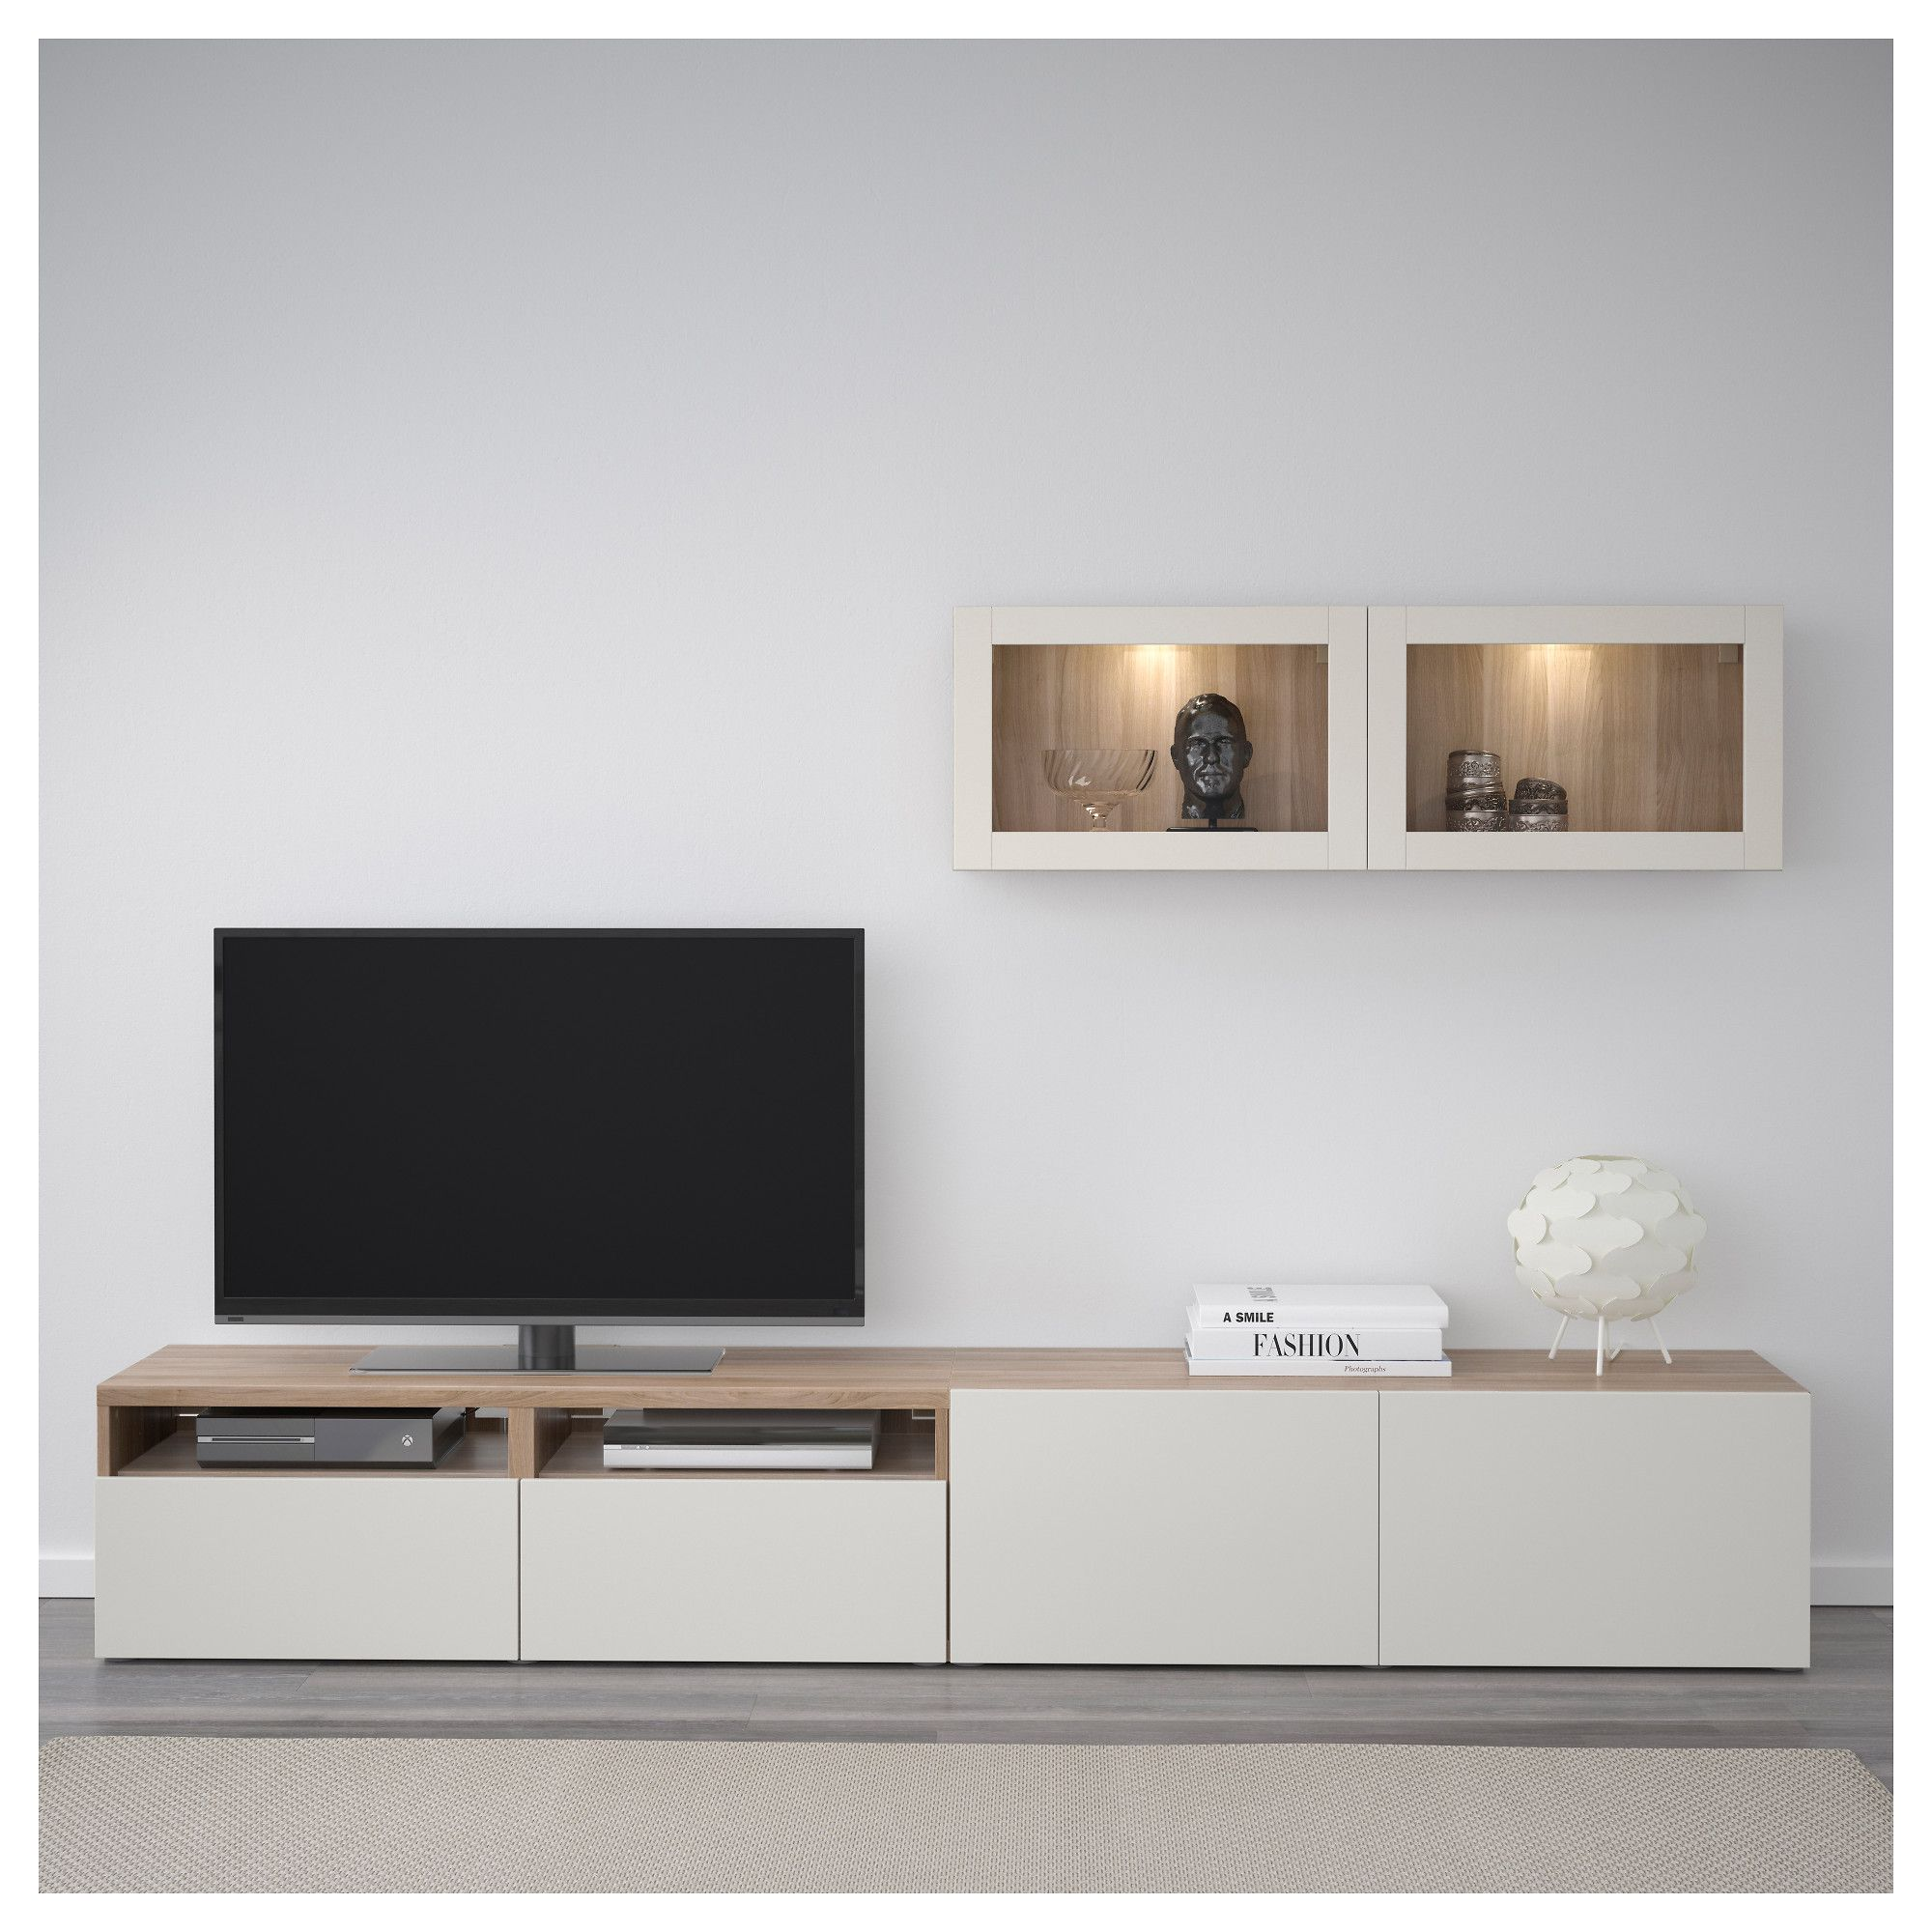 Ikea Besta Im Badezimmer Ikea BestÅ Tv Storage Combination Glass Doors Walnut